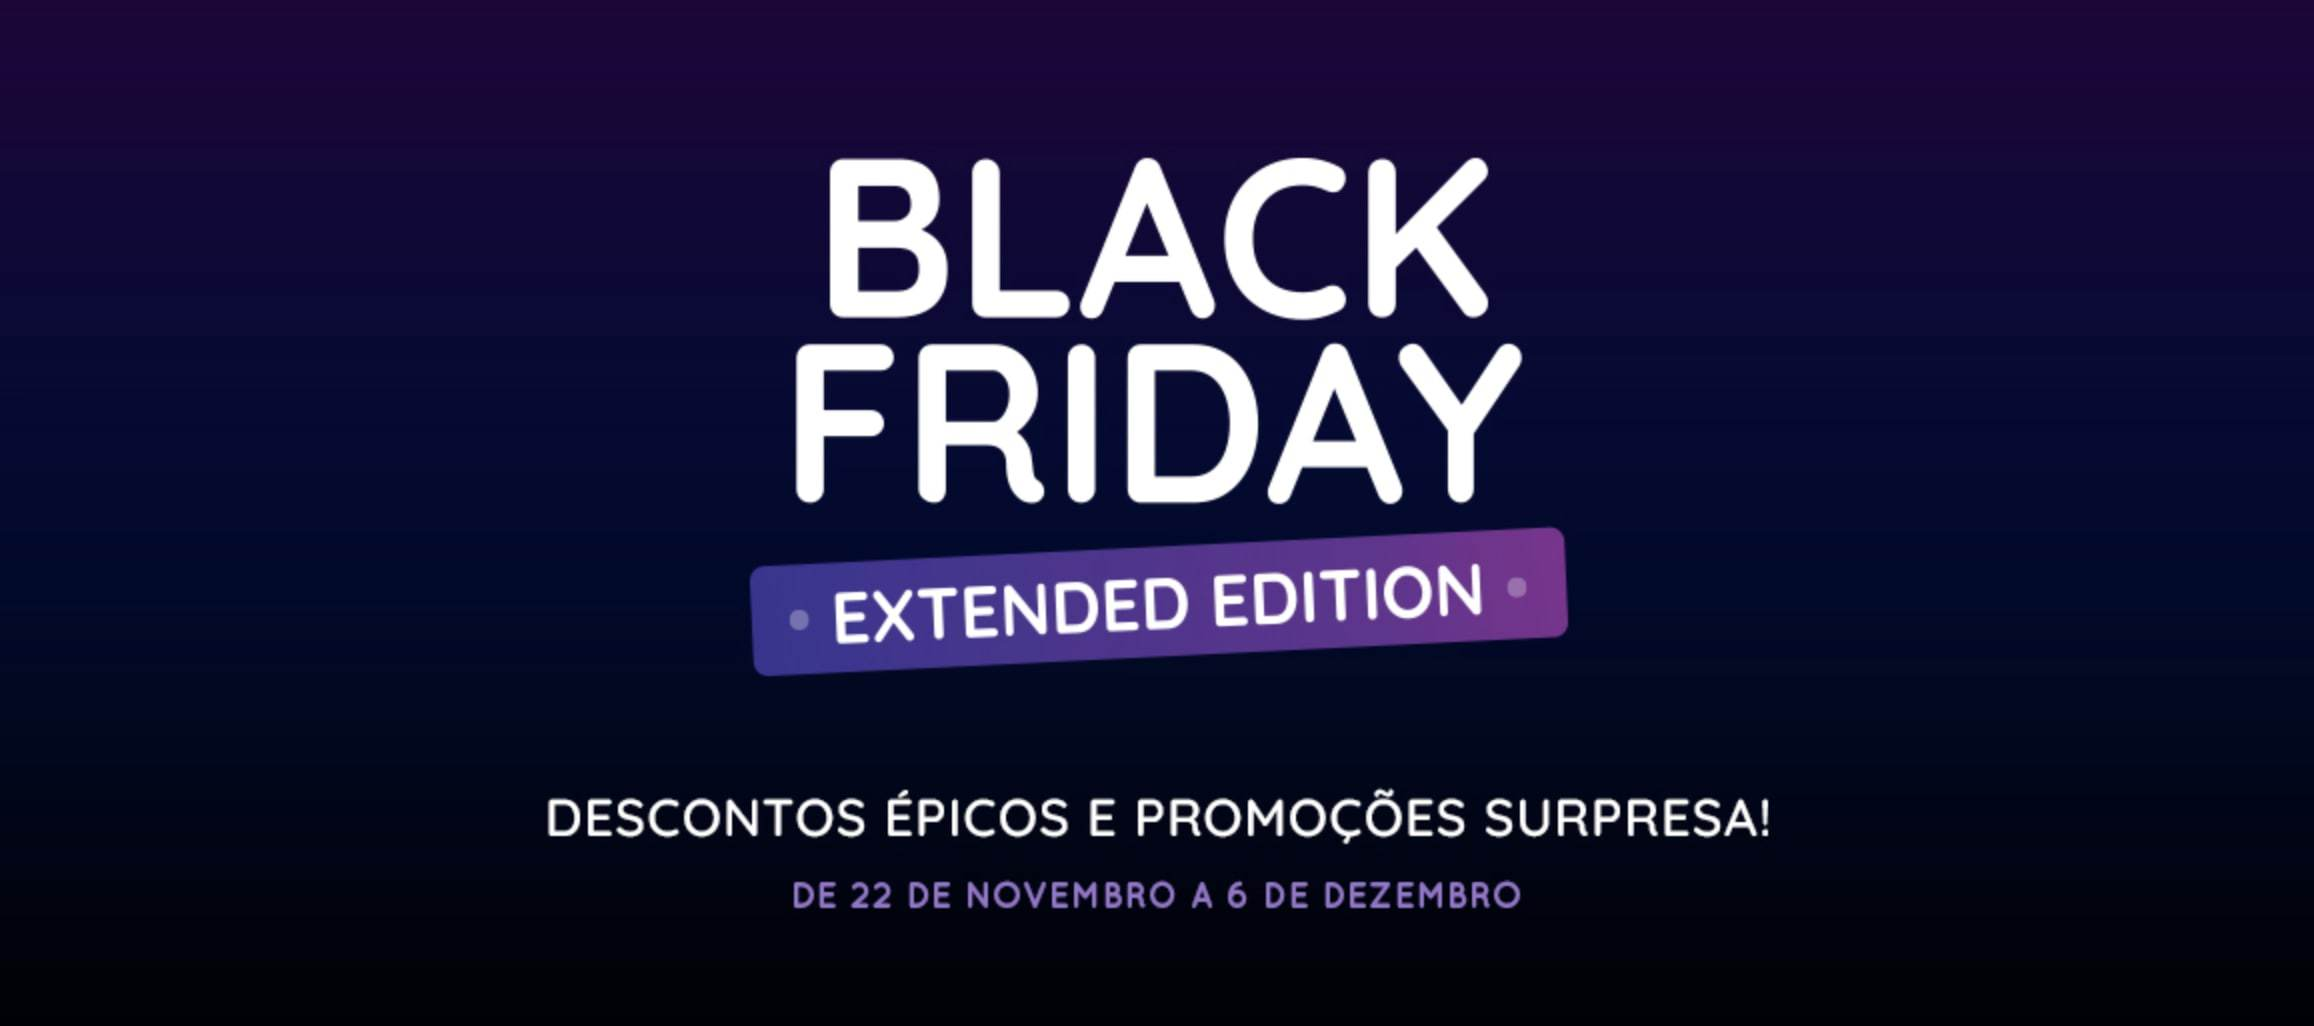 Black Friday GlobalData